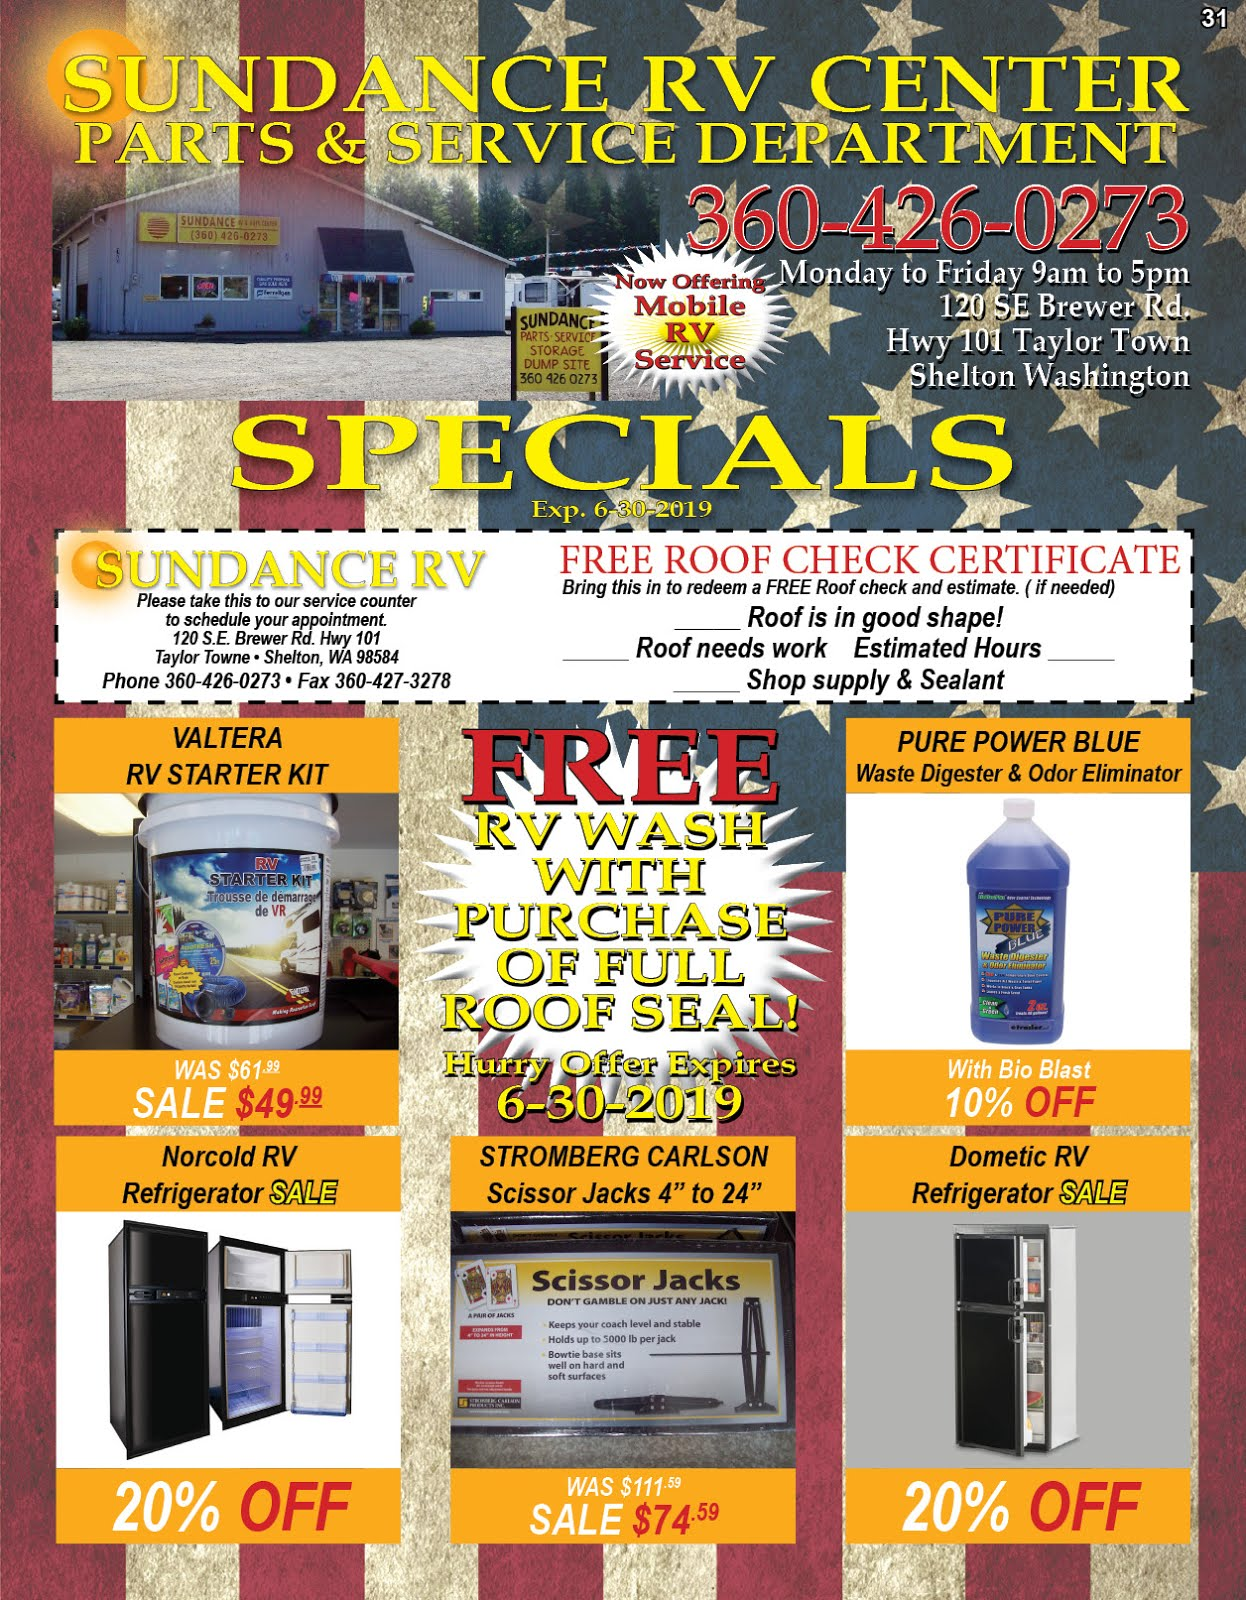 Sundance RV Center Sales Consignments, Mobile RV Service & Parts!